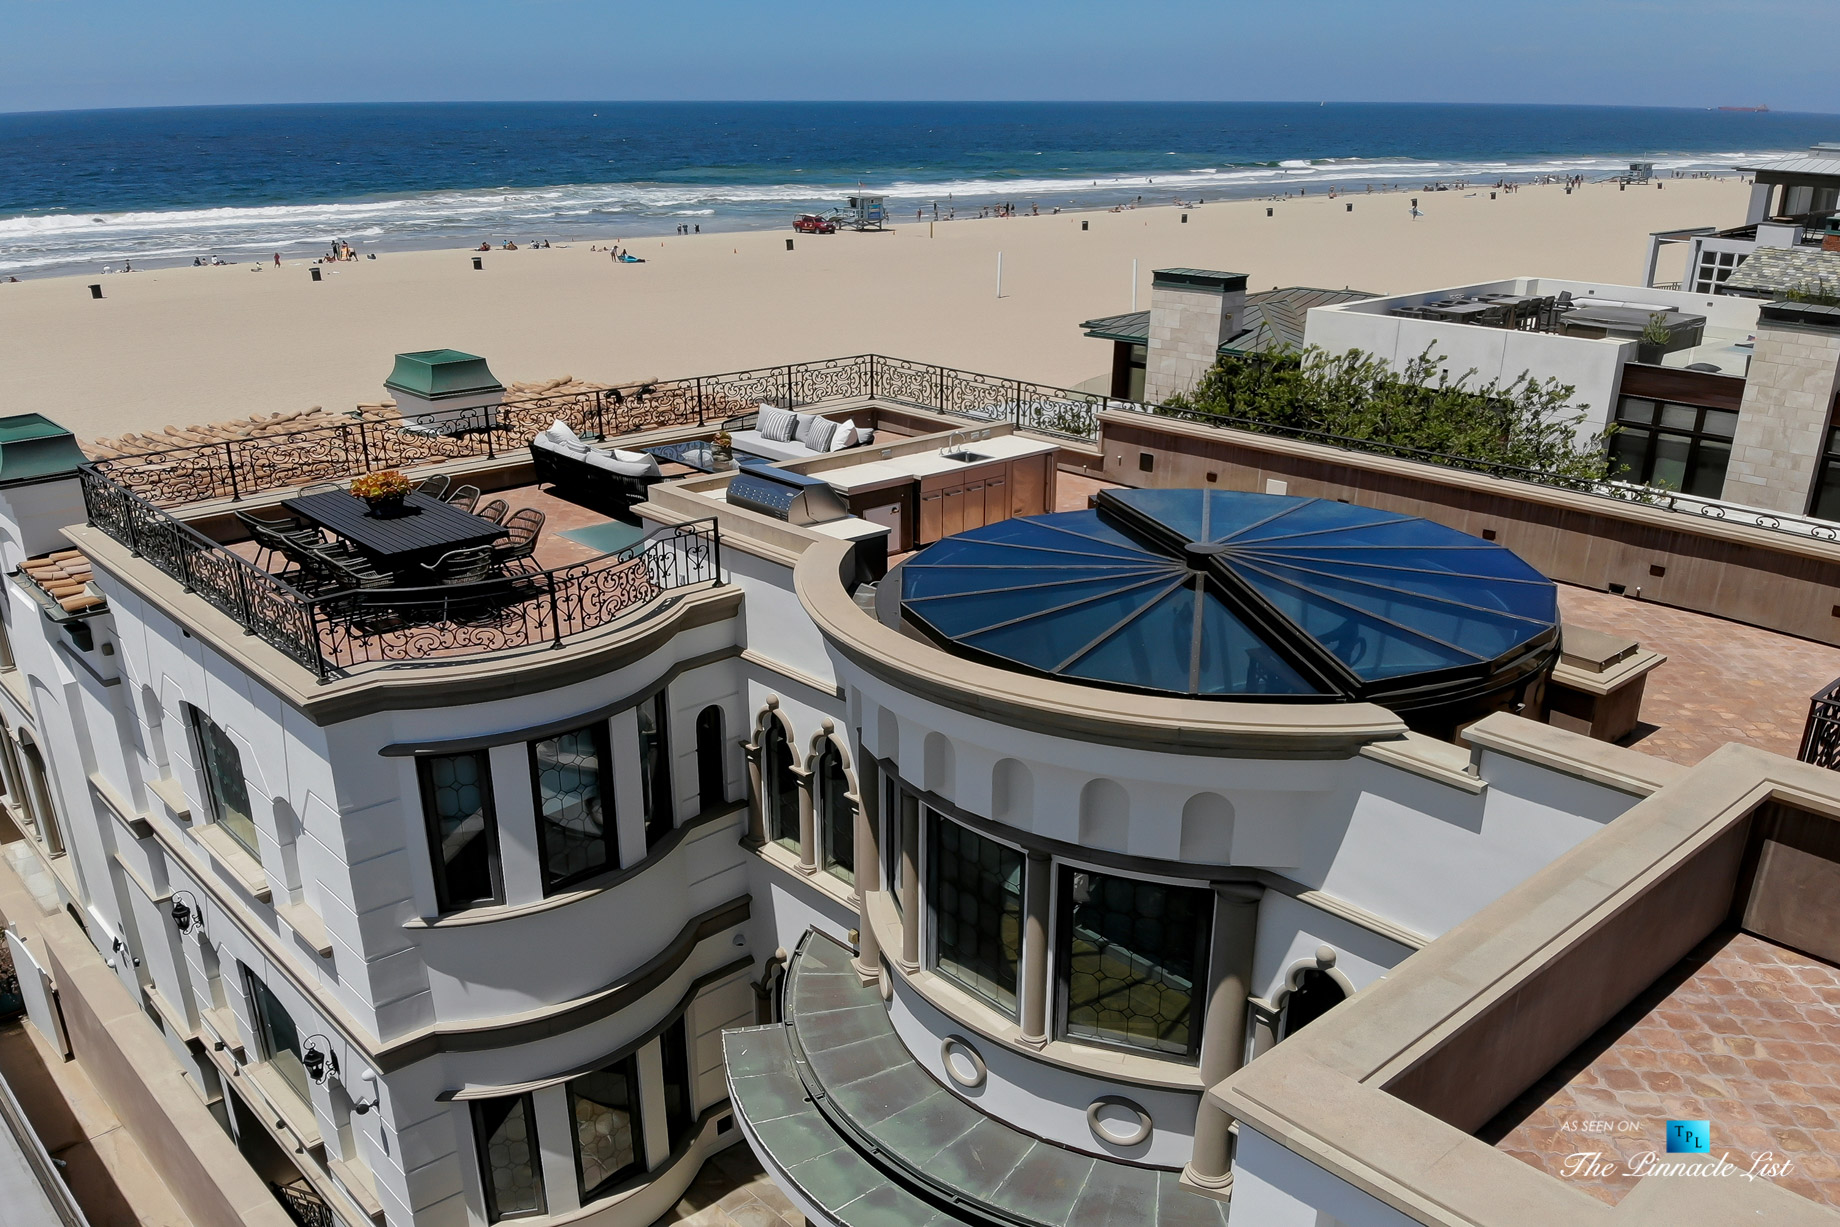 Oceanfront Luxury Living Exemplified - 2806 The Strand, Hermosa Beach, CA, USA - Rooftop Deck